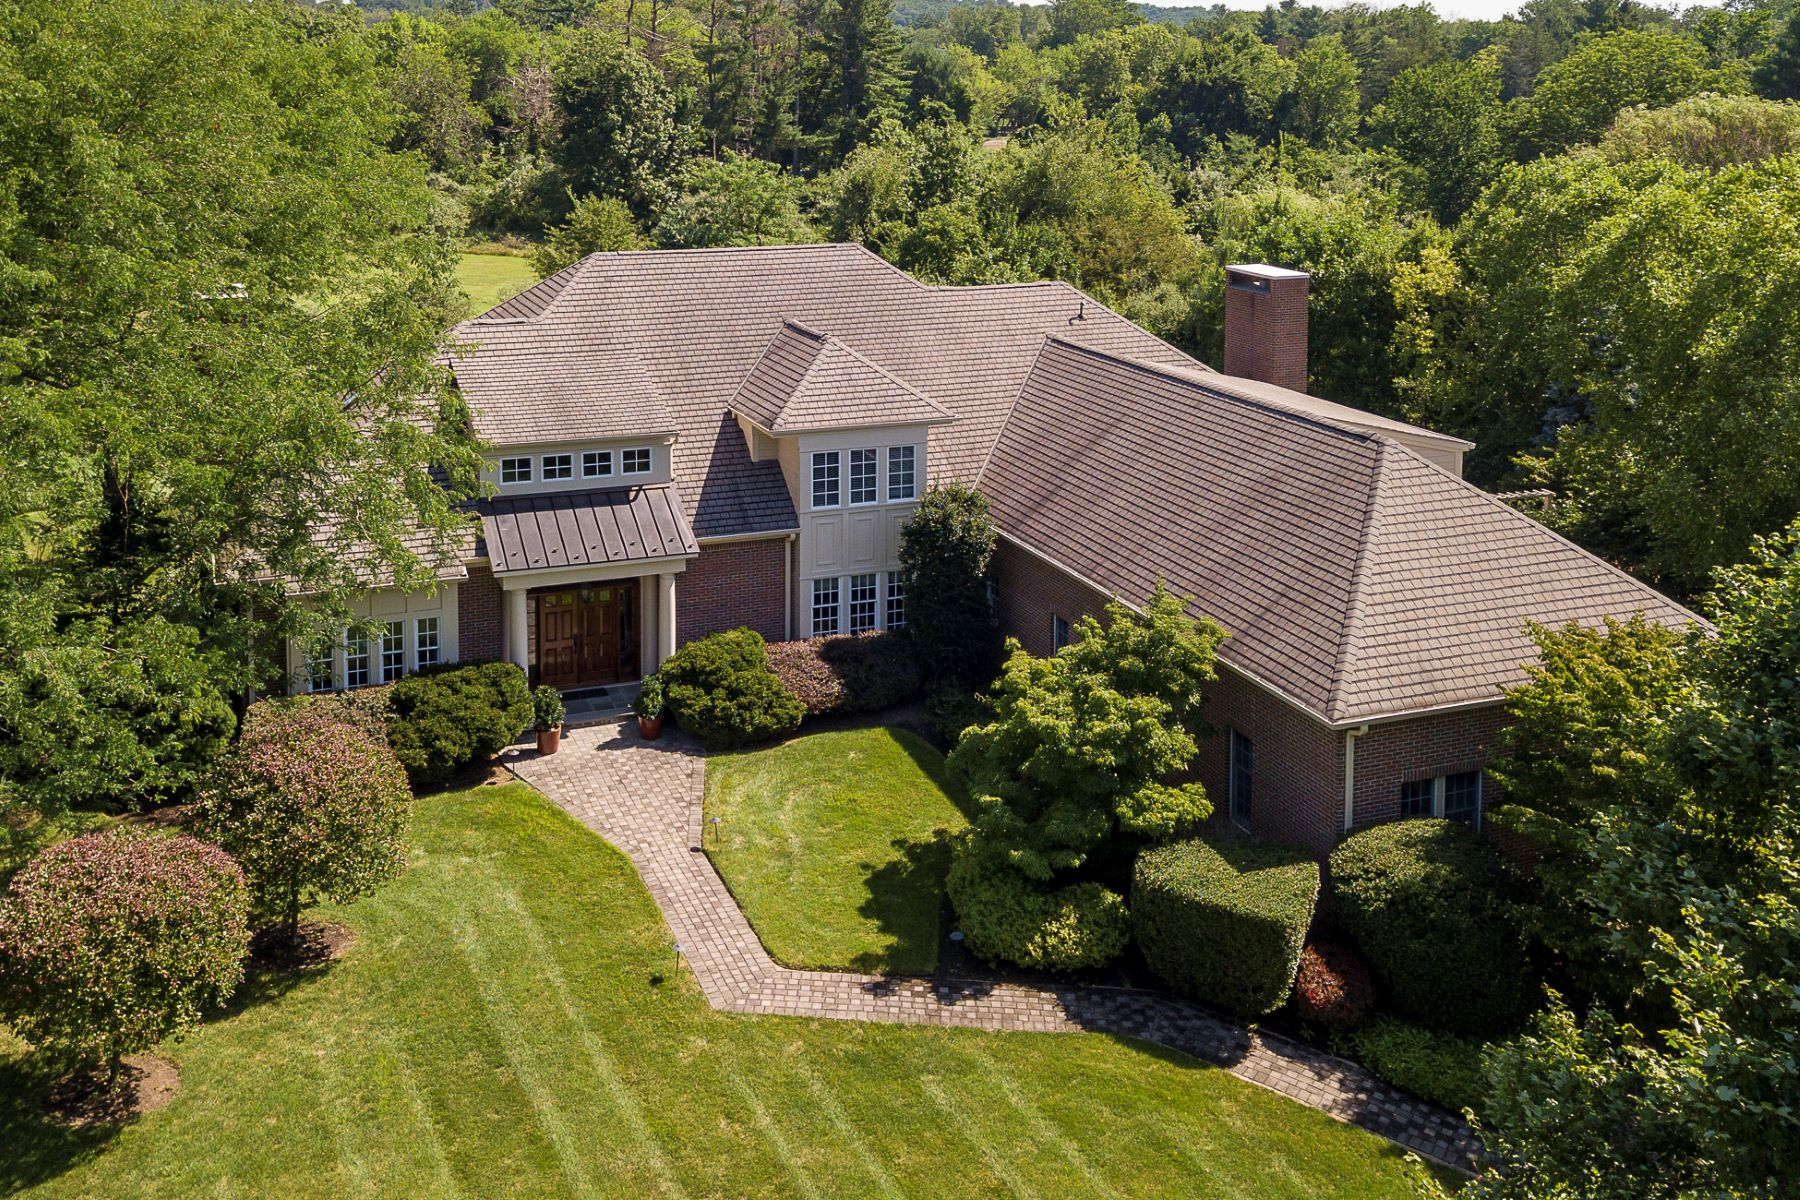 Single Family Homes for Sale at Peaceful Views, Plentiful Space, Perfect Locale 51 Grasmere Way, Princeton, New Jersey 08540 United States